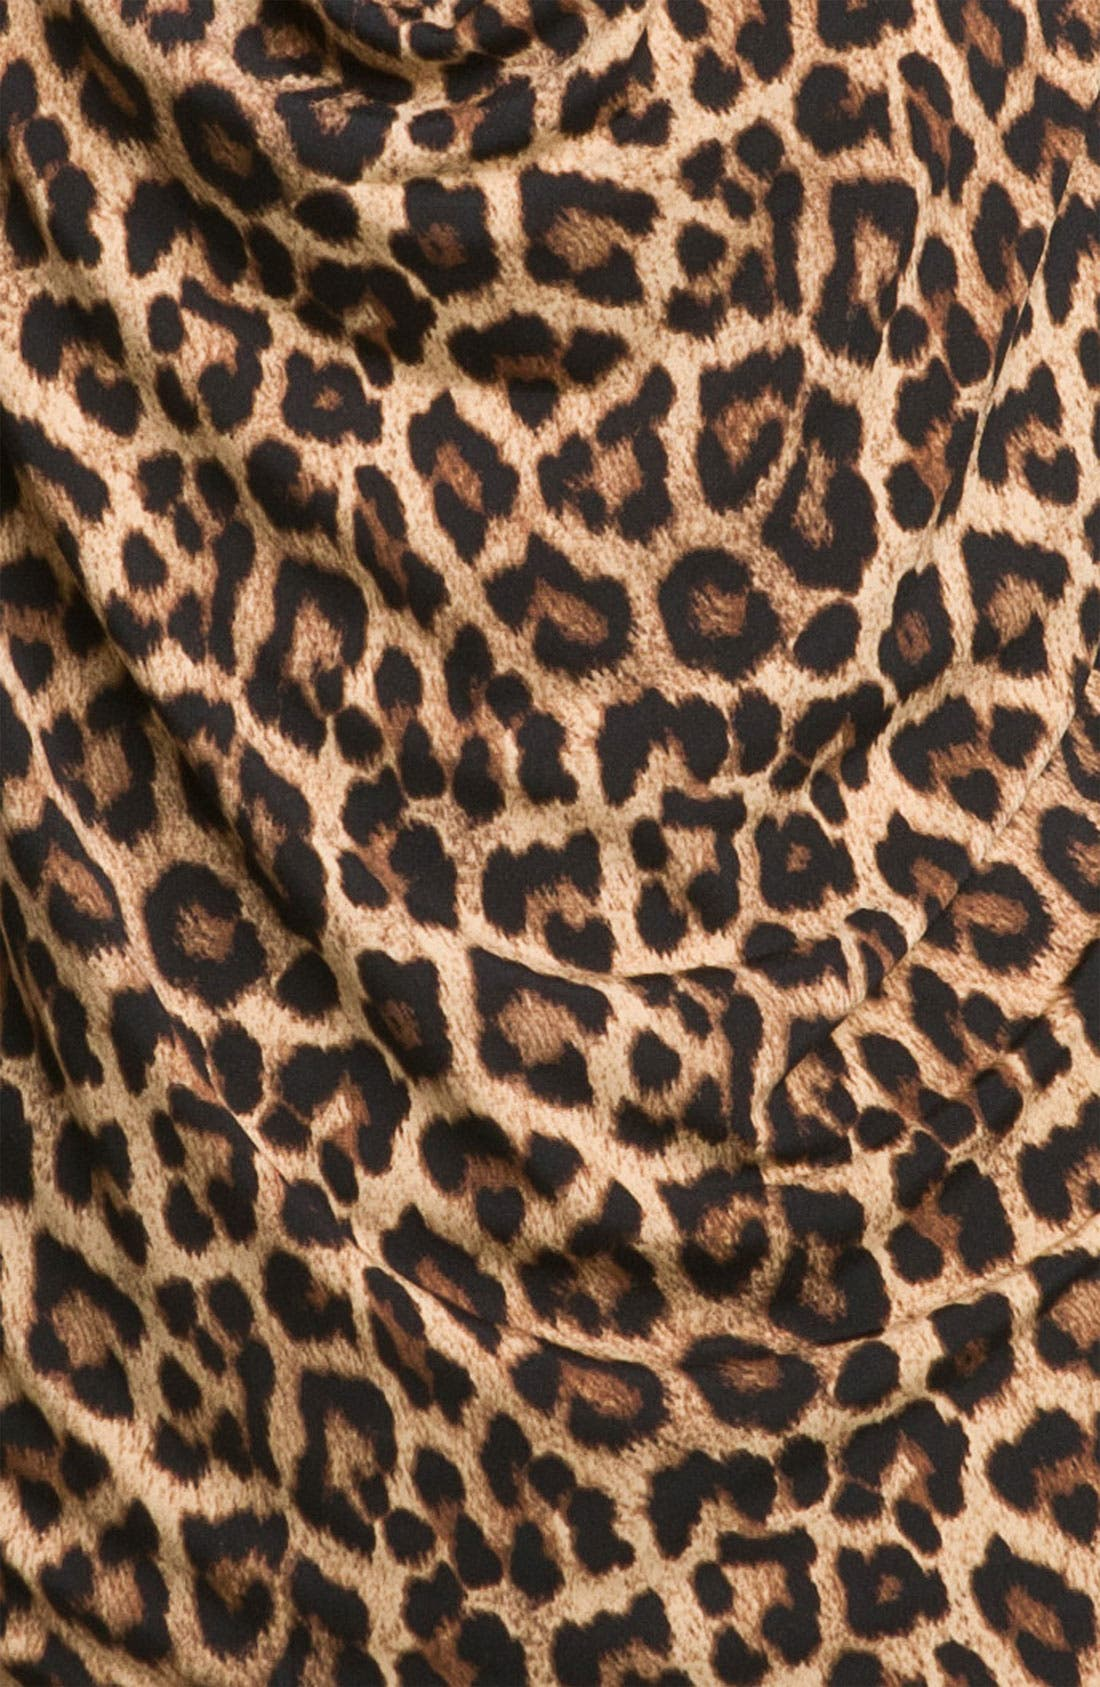 Alternate Image 3  - MICHAEL Michael Kors Jaguar Print Cowl Neck Top (Petite)